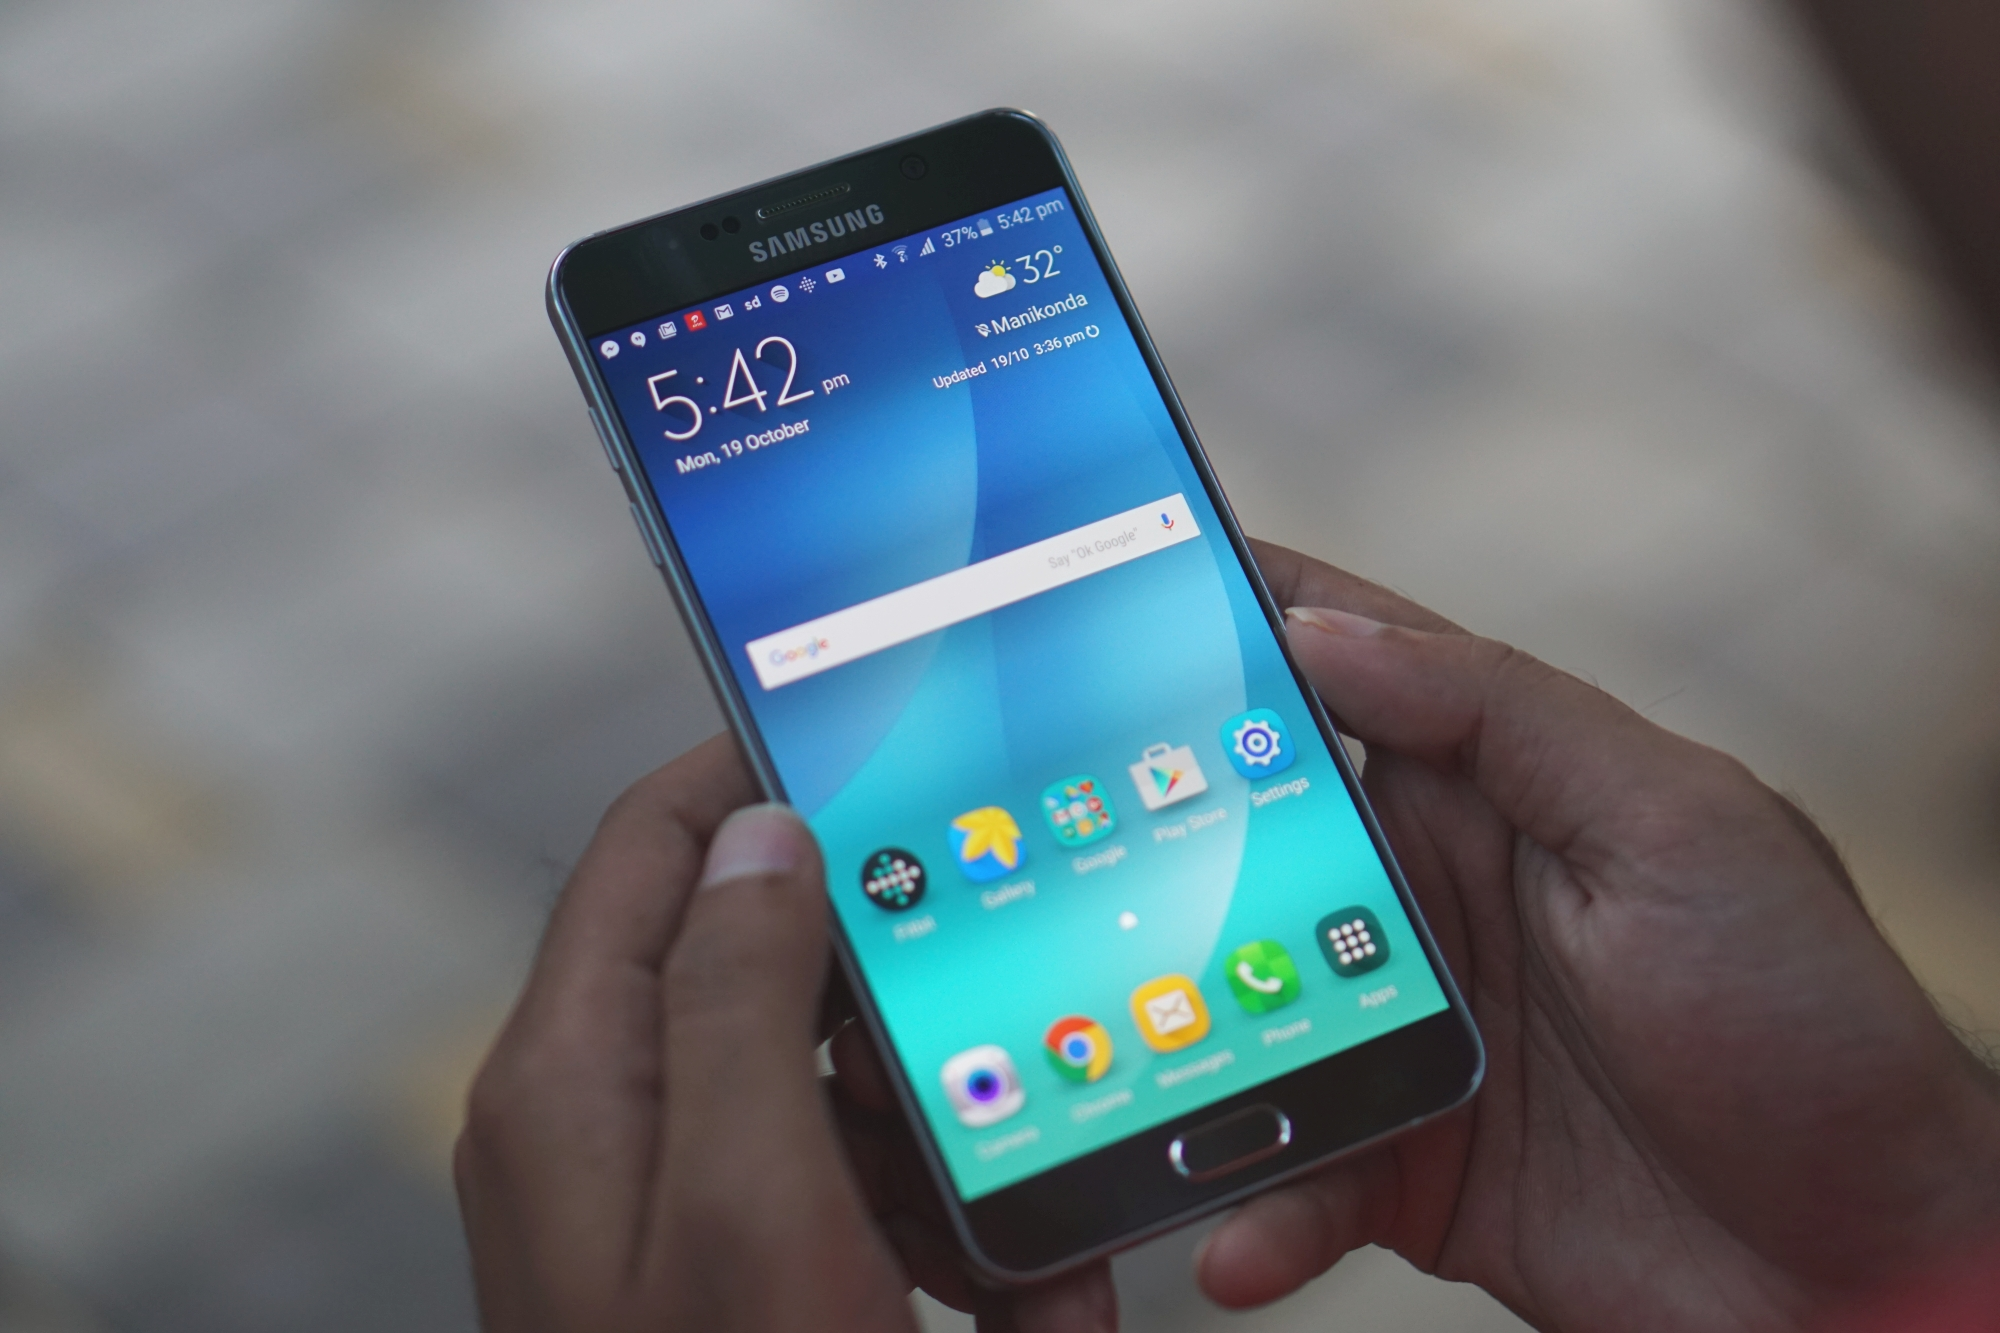 Marshmallow for the Galaxy Note 5 has quite a few issues